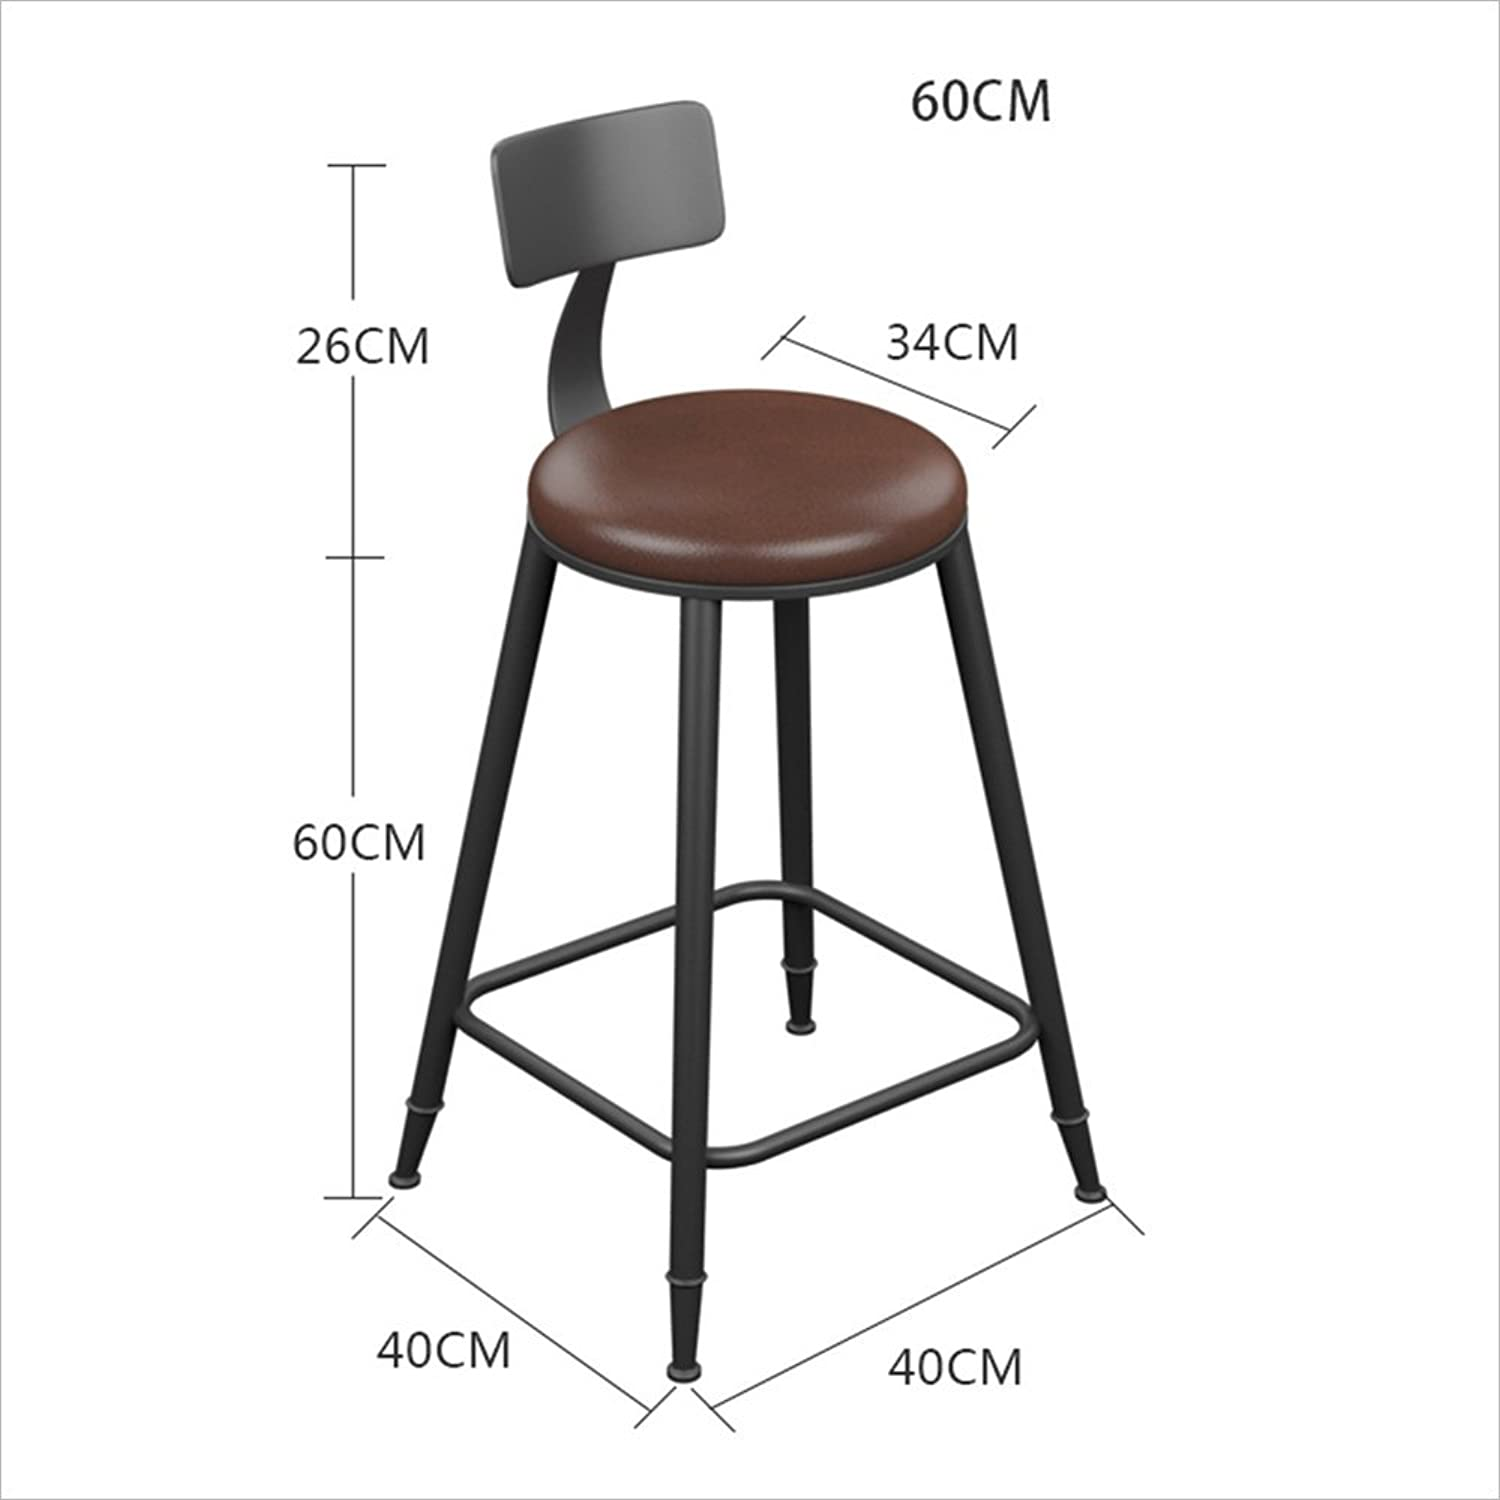 XIAOYAN Bar Stool Chair Kitchen Chair Dining Chair Breakfast Chair Natural Pinewood Height Industrial Style (color   PU seat, Size   60CM)